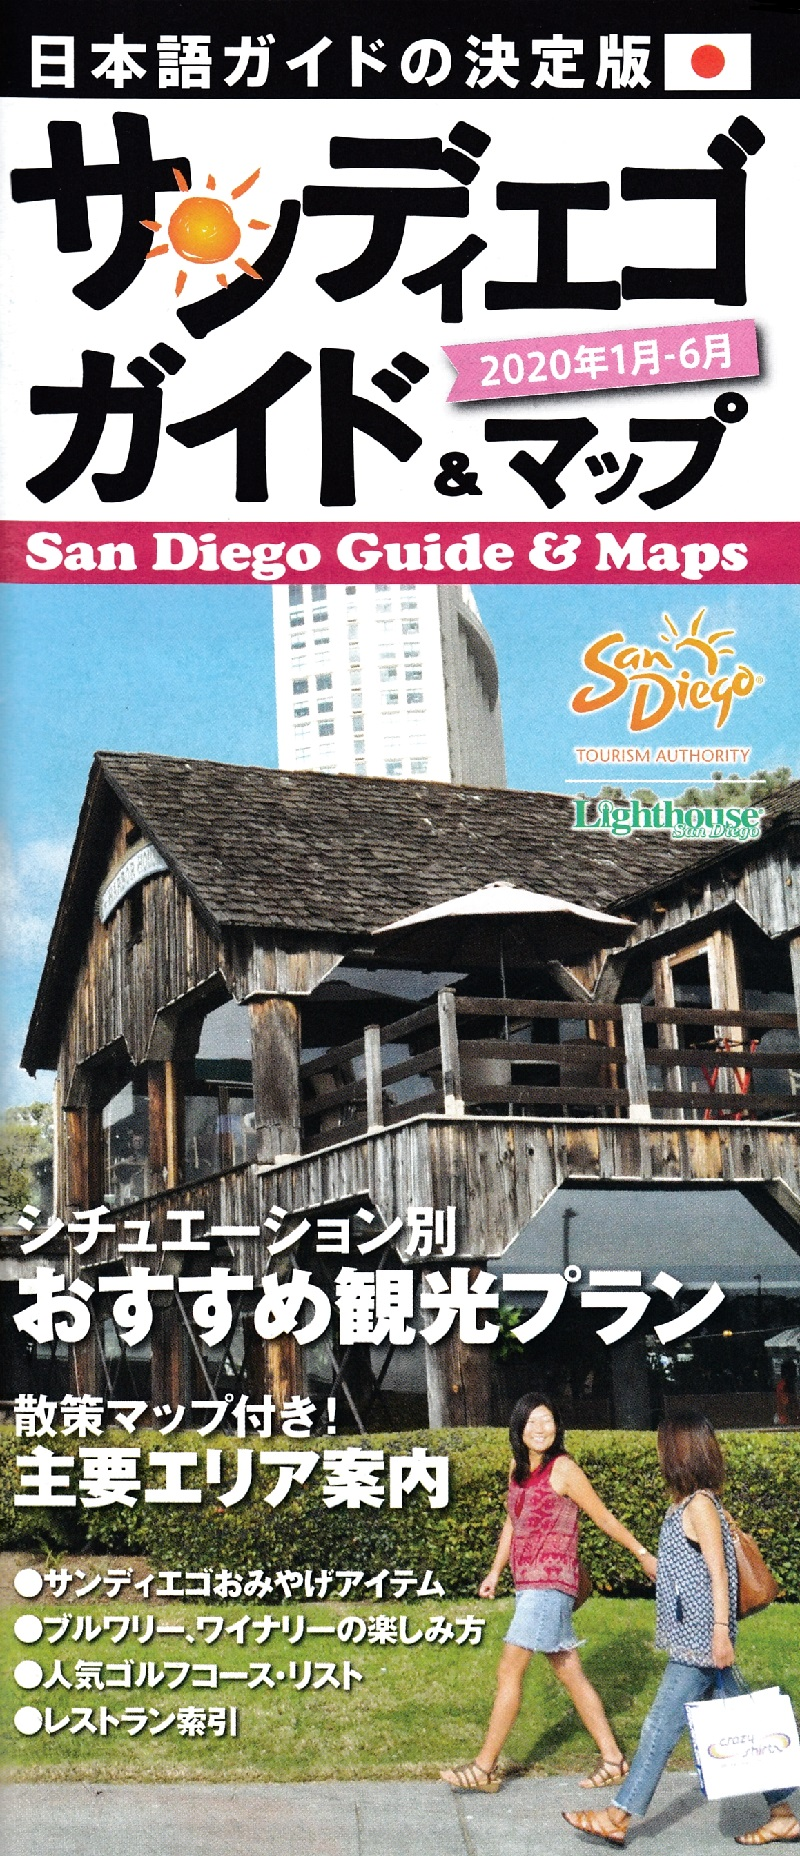 San Diego Japanese Guide